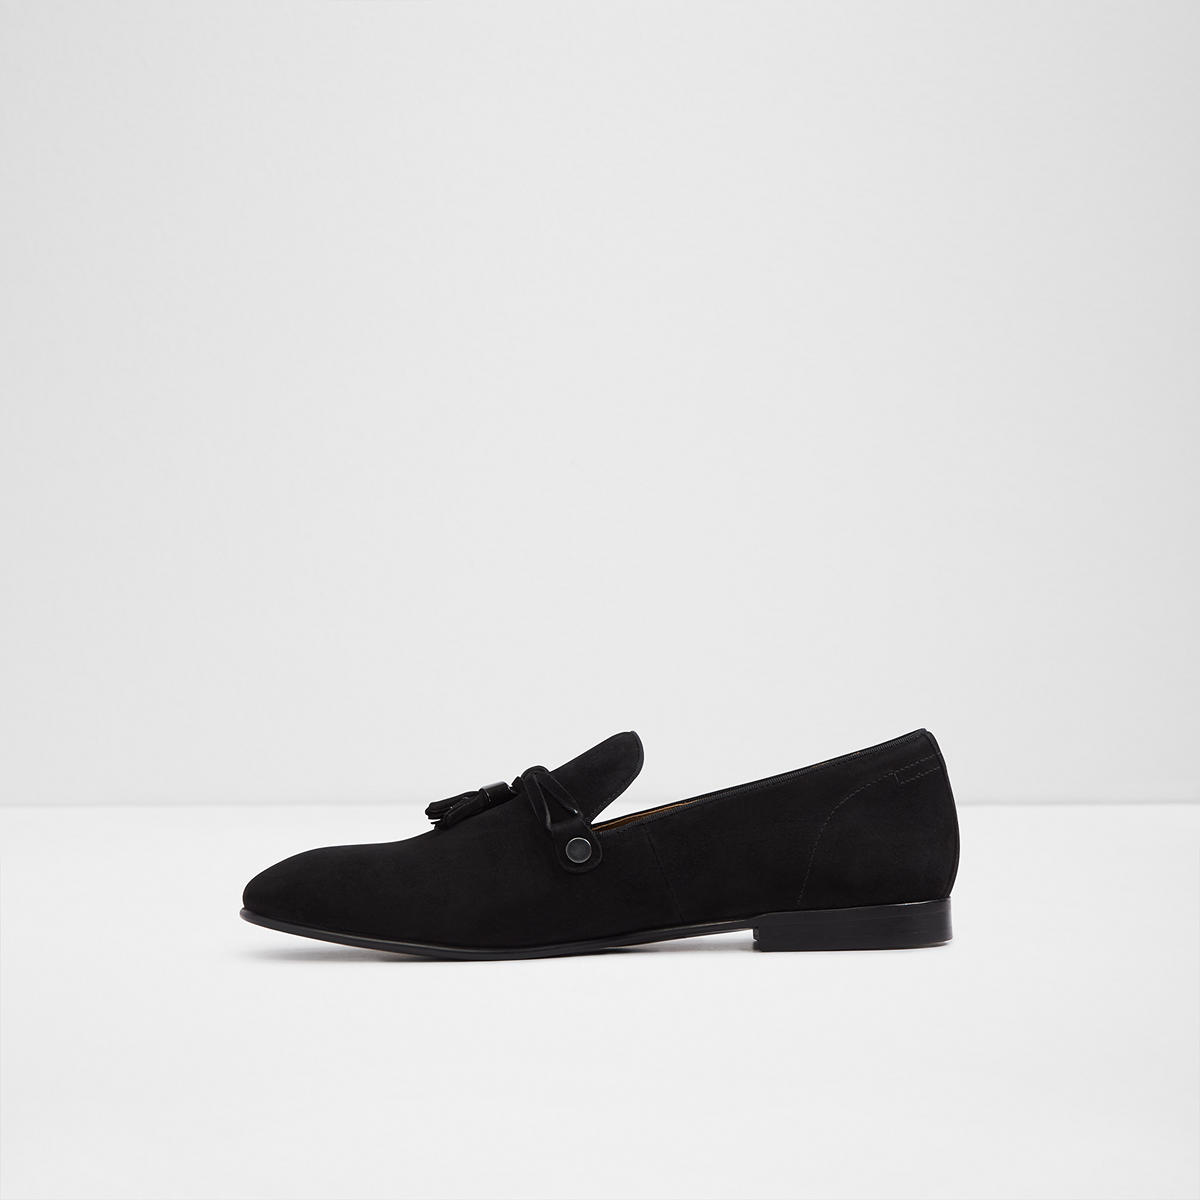 0515123d1b4d96 Mccrery Black Other Men s Loafers